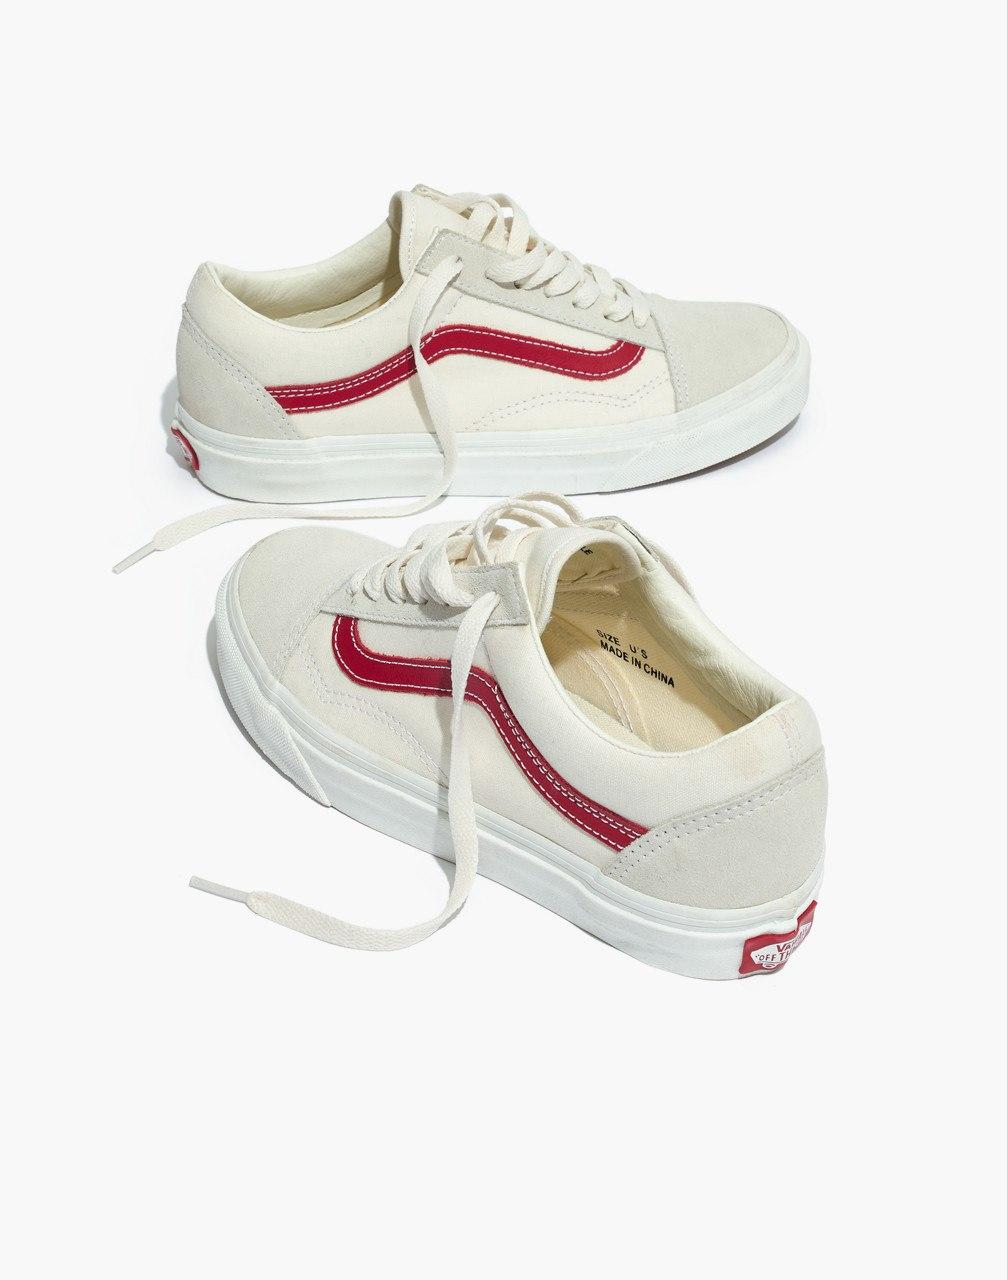 c987dcfd813fbd Lyst - Madewell Vans Unisex Old Skool Lace-up Sneakers